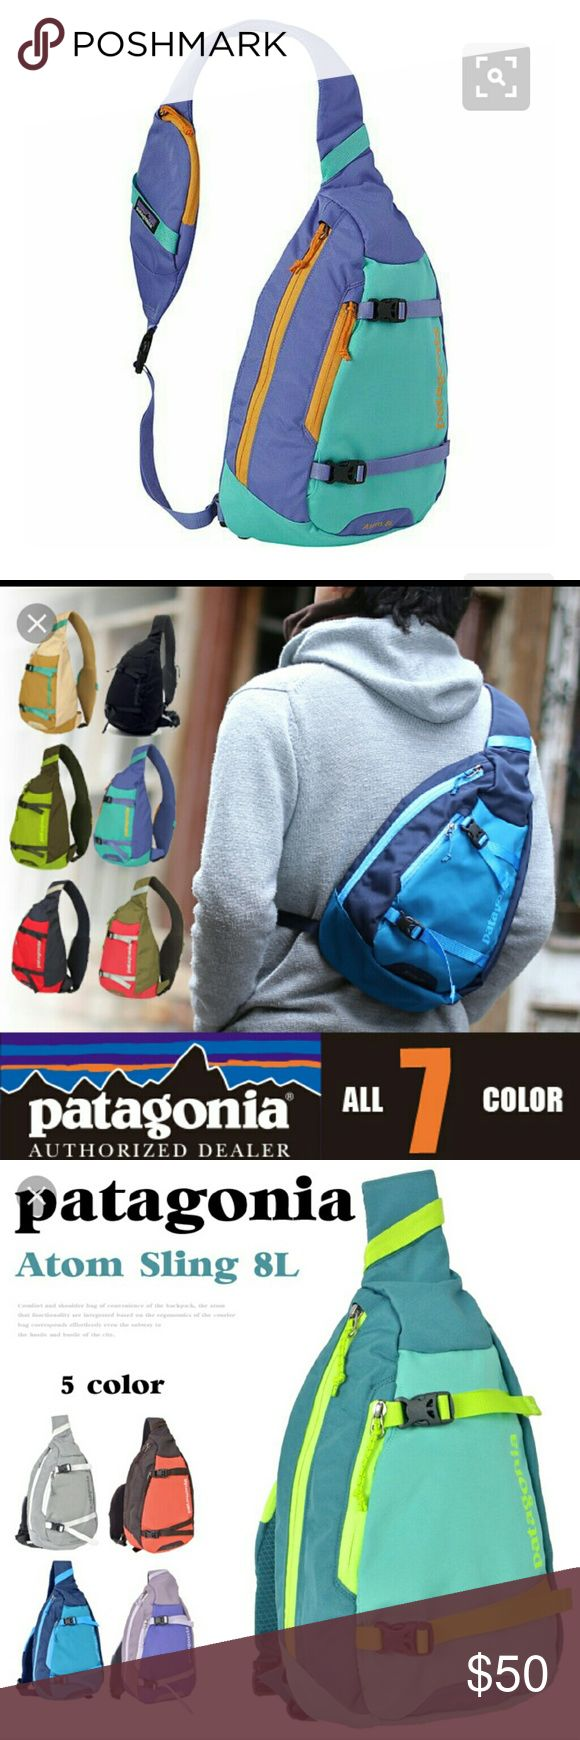 Patagonia Atom Sling 8L. Never used. Selling color in first photo. Patagonia Bags Crossbody Bags